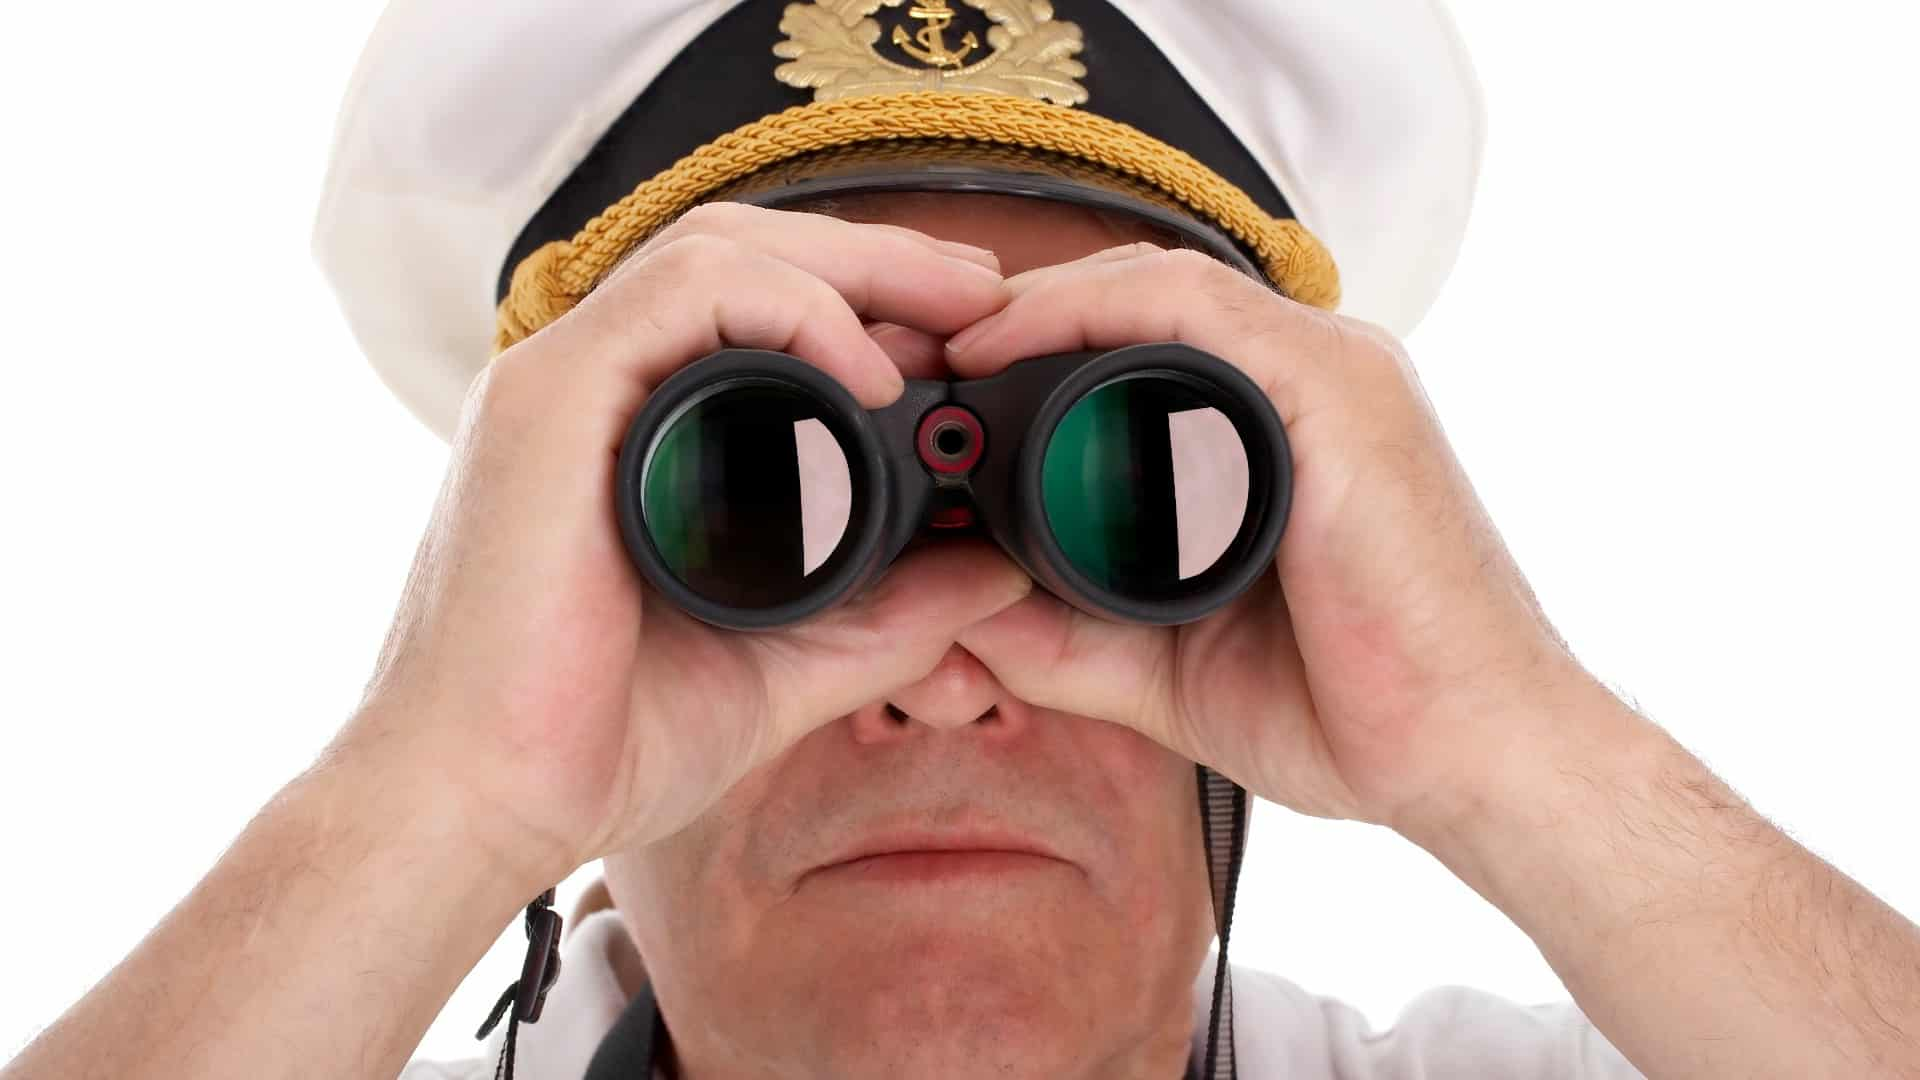 asx share price on watch represented by ship captain looking through binoculars